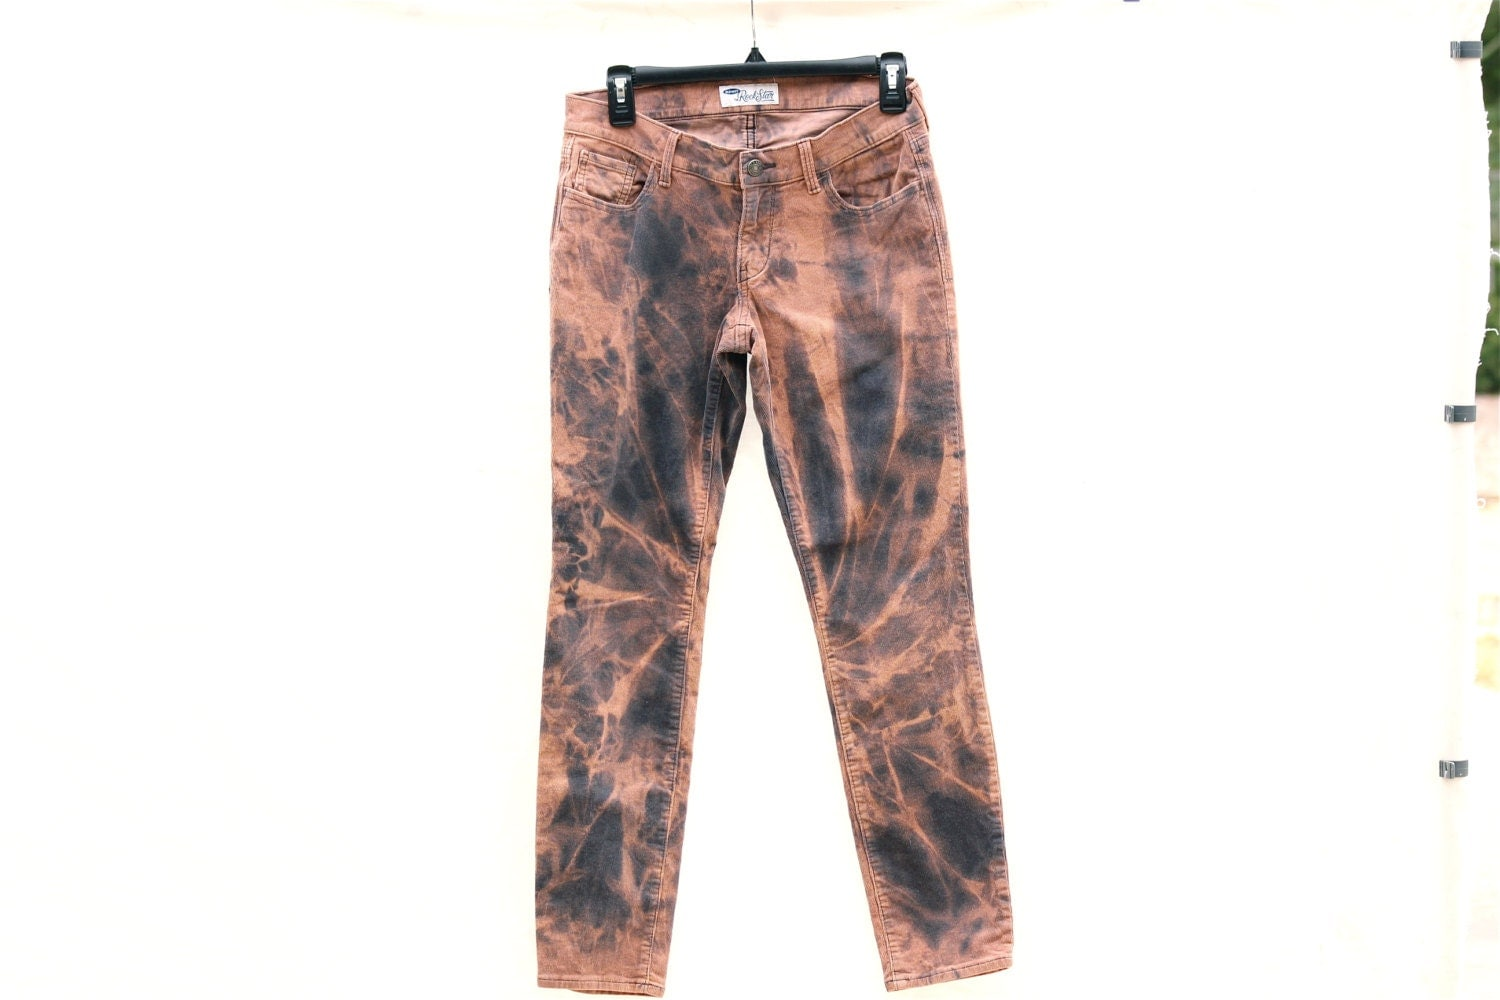 Upcycled Tie Dye Corduroy Pants, OOAK Repurposed Bottoms, Hippie ...